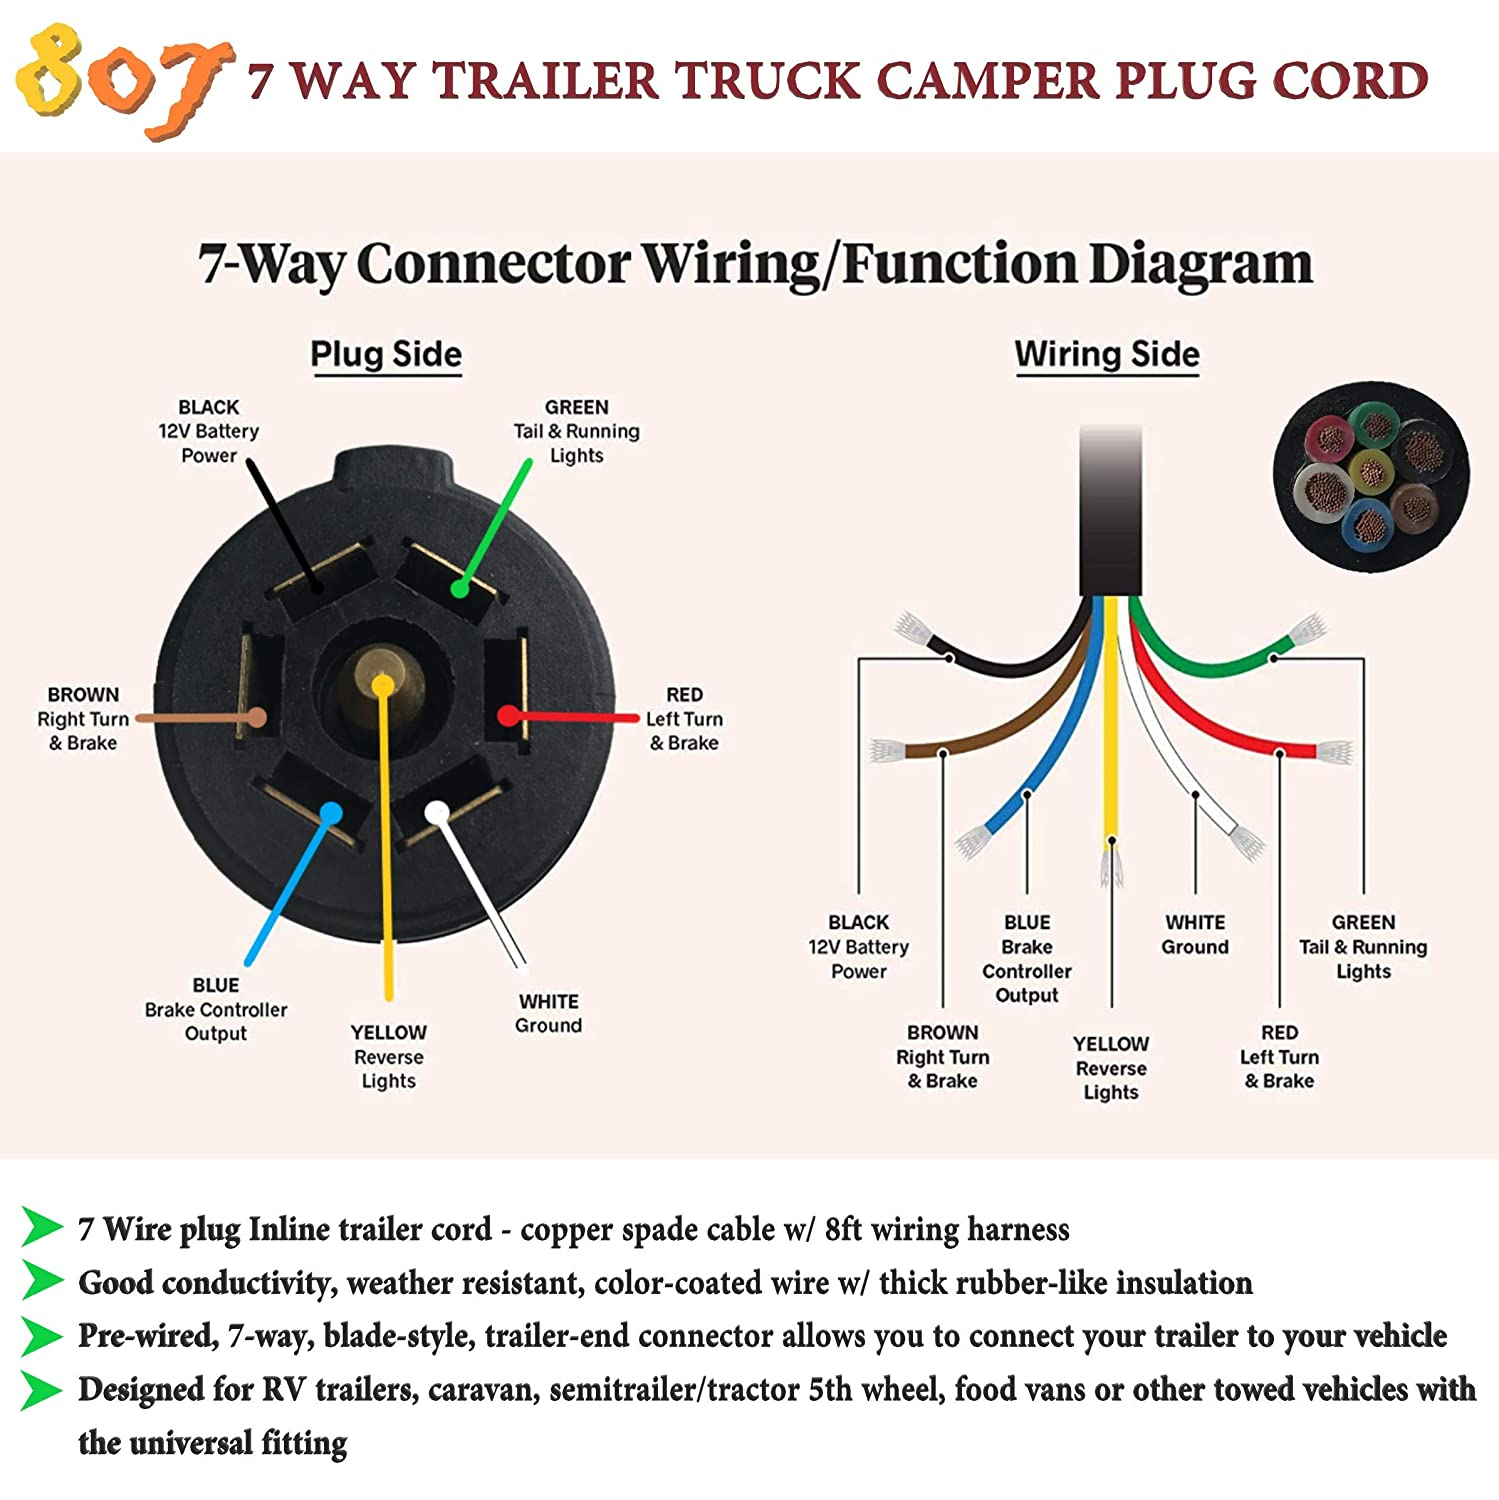 2003 Chevy 7 Way Wiring Diagram Wiring Diagram For Trailer Lights And Electric Brakes For Wiring Diagram Schematics